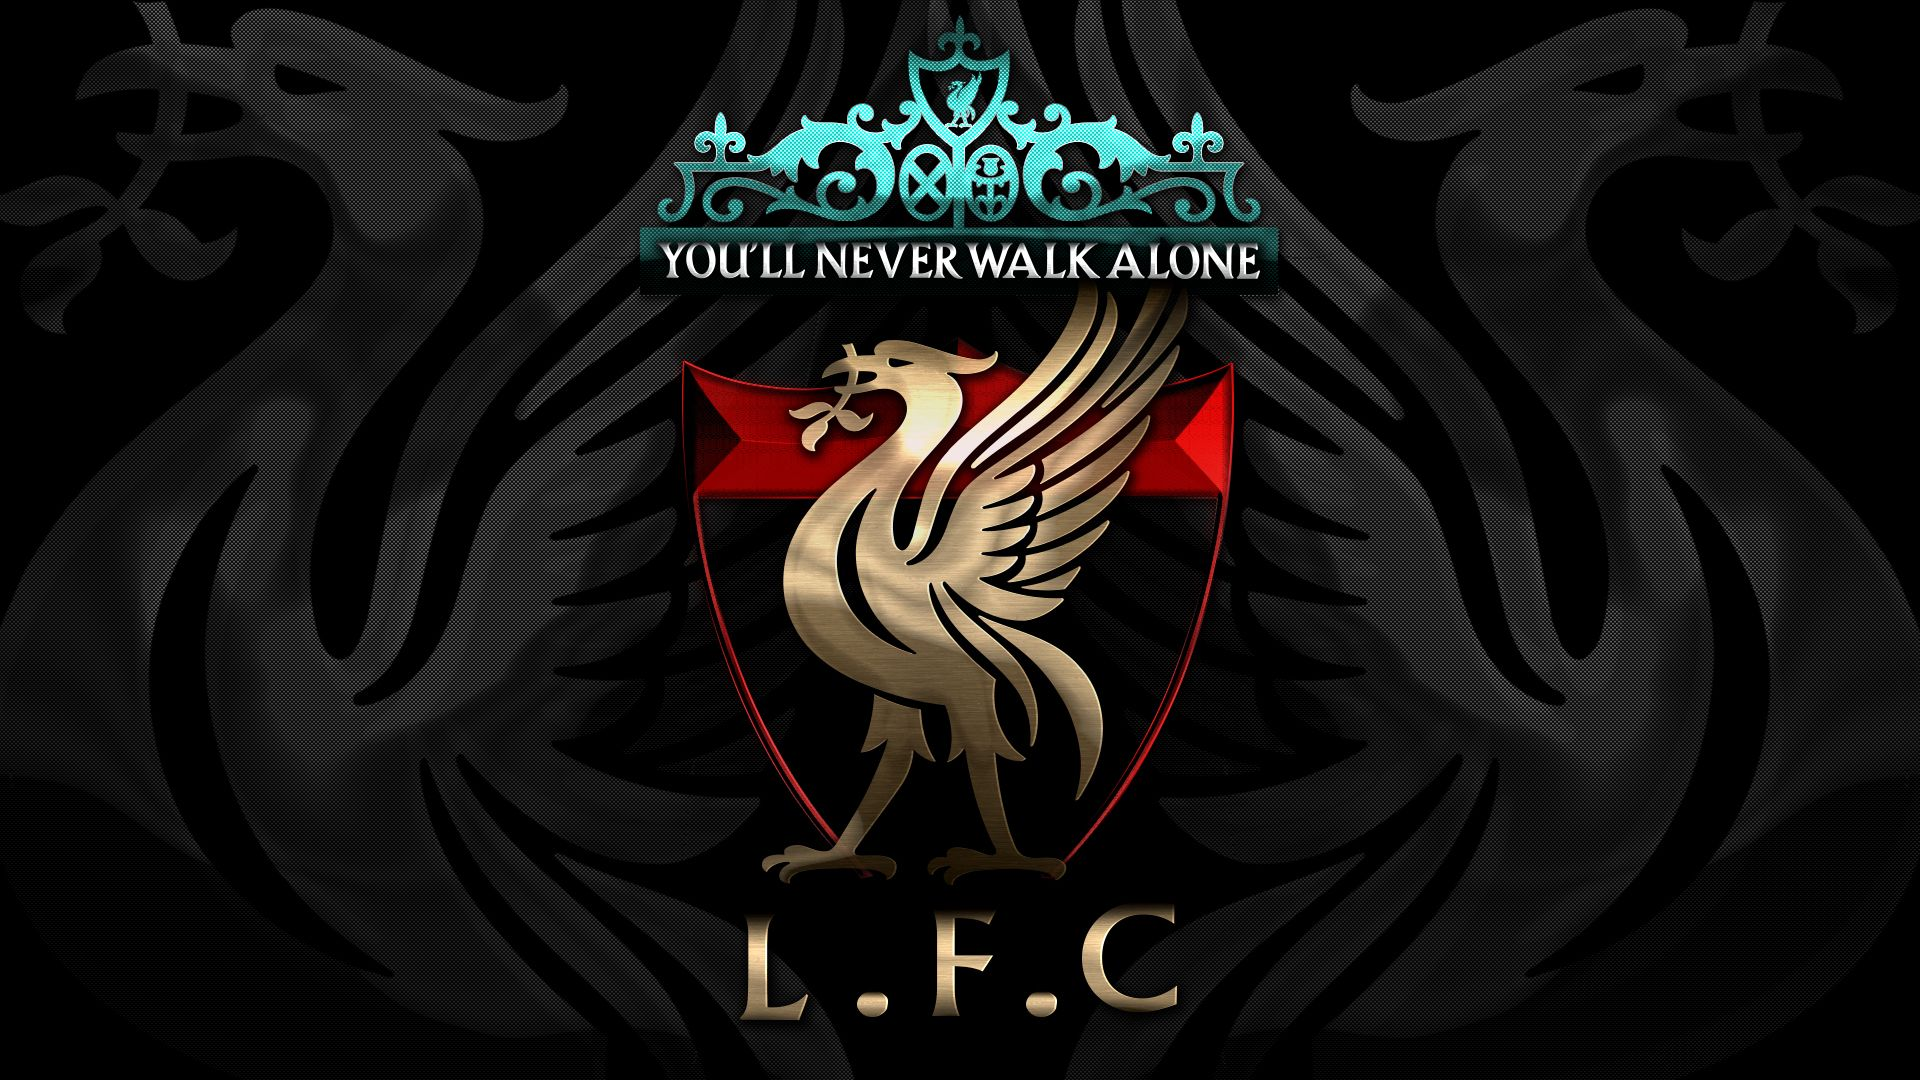 Liverpool Fc Wallpaper Wide Images 56527 1920x1080 Px 95030 Kb